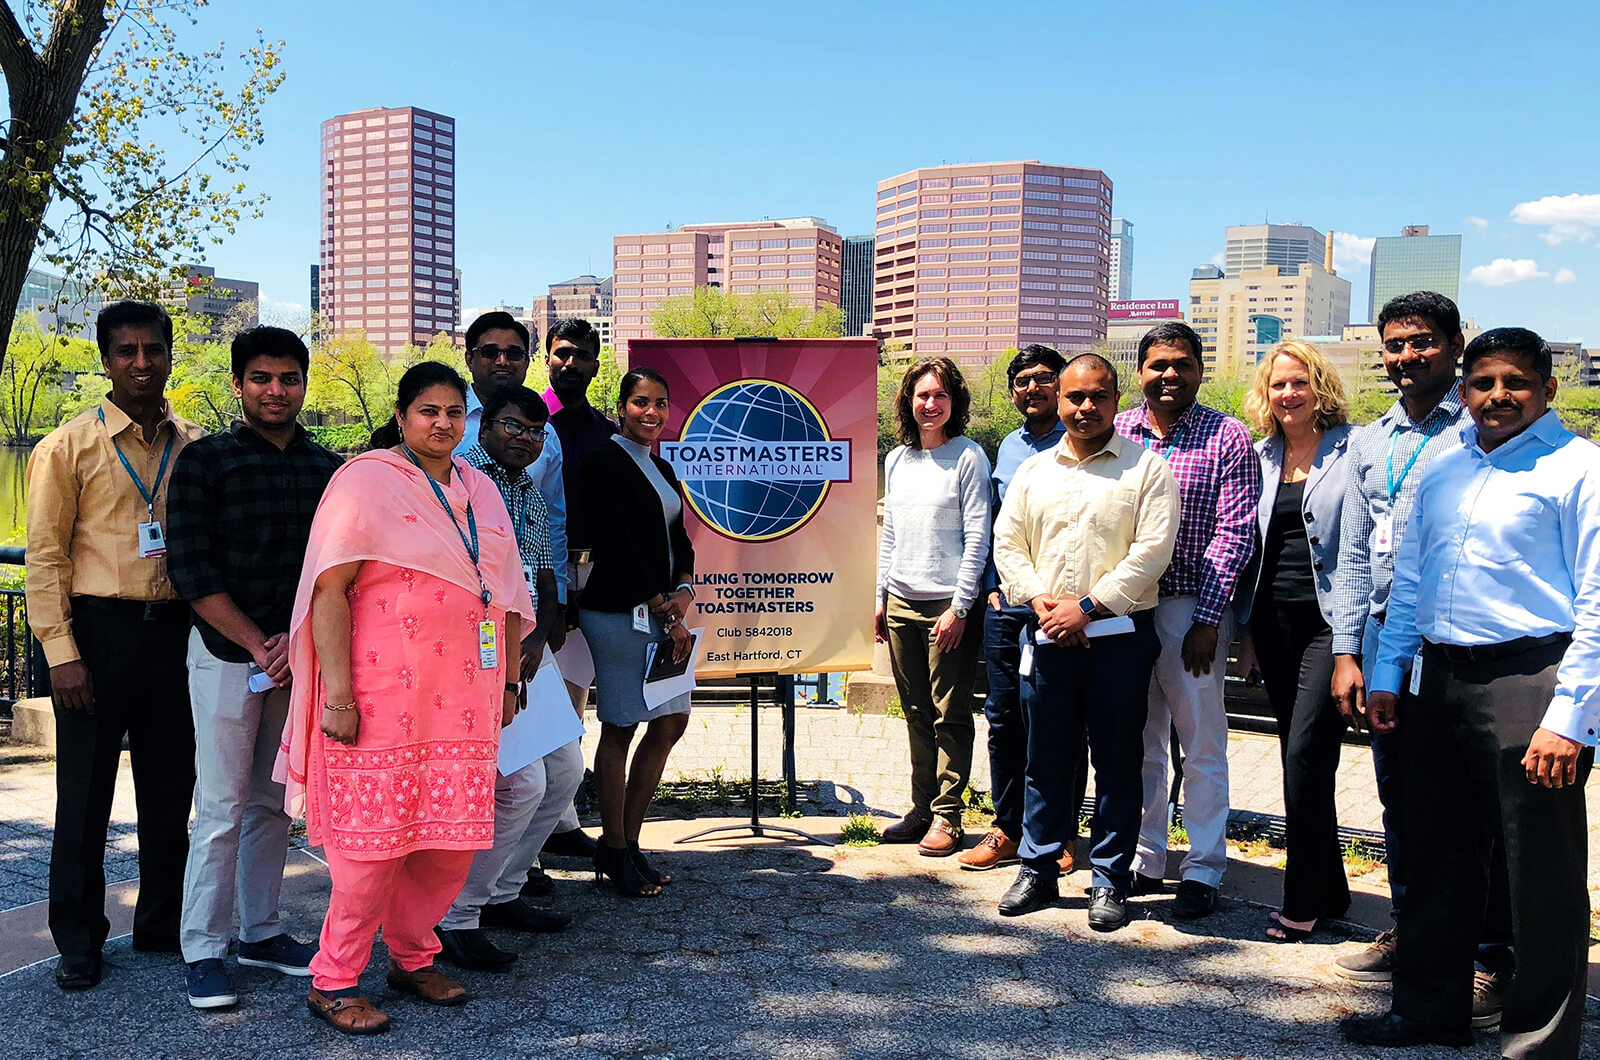 Members of the Talking Tomorrow Together Toastmasters club in East Hartford, Connecticut, celebrate their one-year anniversary.